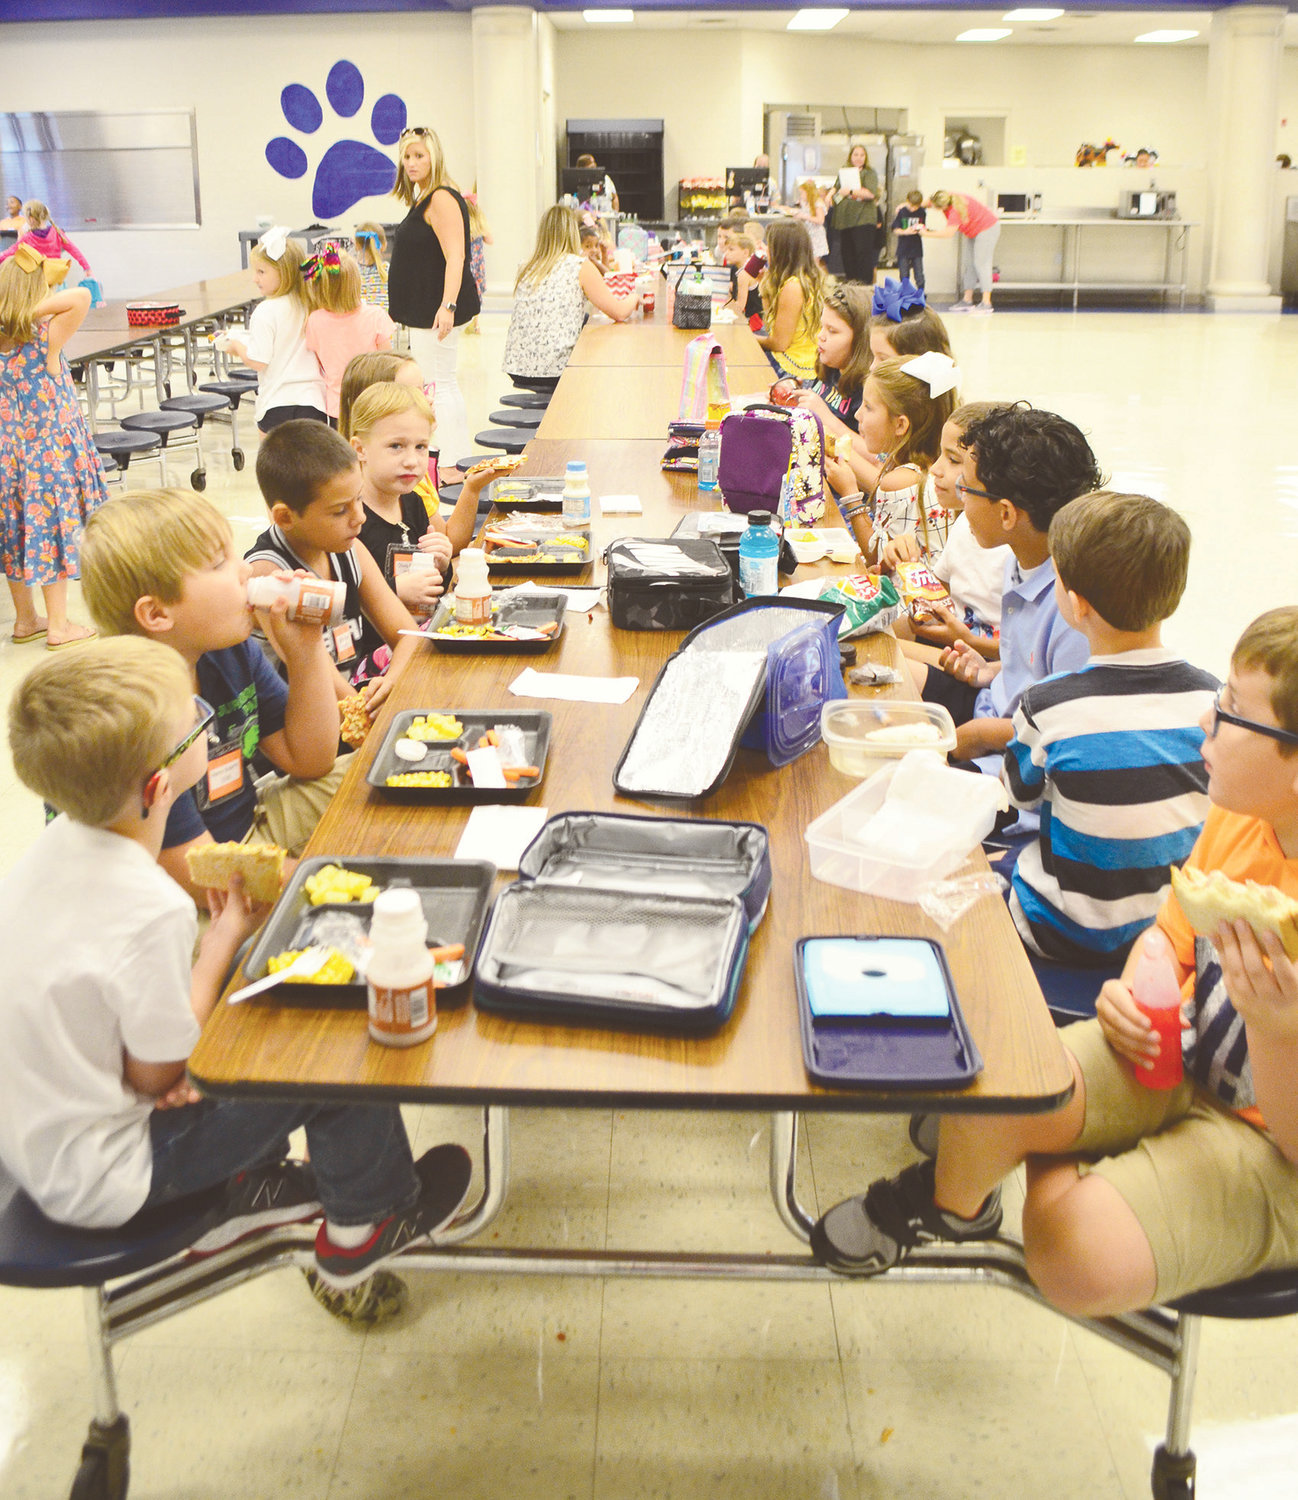 Thousands of students returned to Jasper City and Walker County schools today. Despite a rainy day, teachers and administrators reported everyone had a good first day back. A video with highlights from the first day can be found on the Daily Mountain Eagle Facebook page.